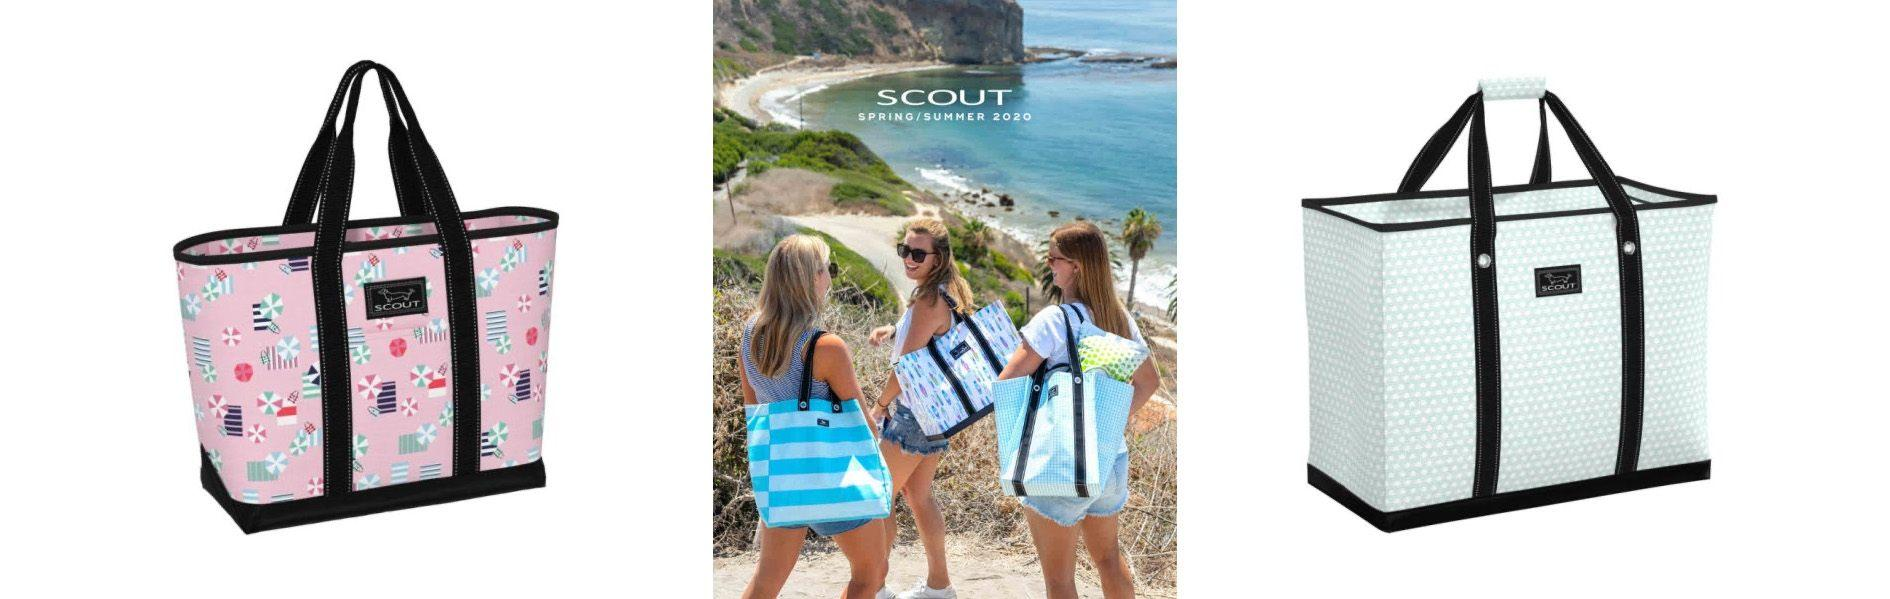 Scout lifestyle products slide 2